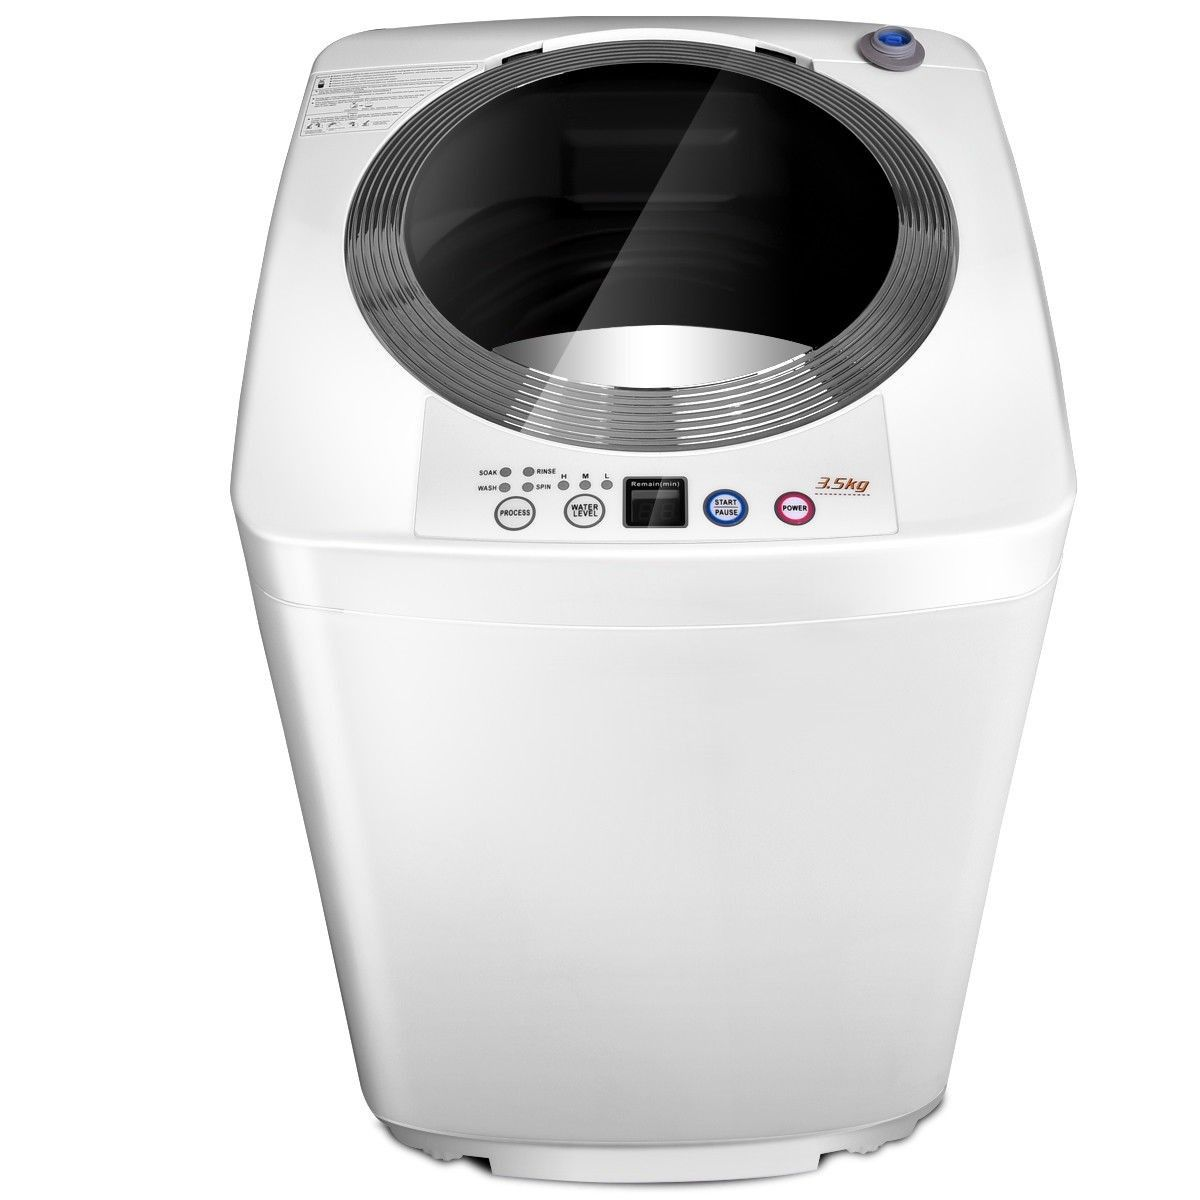 7 7 Lbs Automatic Laundry Washing Machine Material Stainless Steel Inner Tub Pp Plastic Metal Motor Laundry Washing Machine Washing Laundry Washing Machine